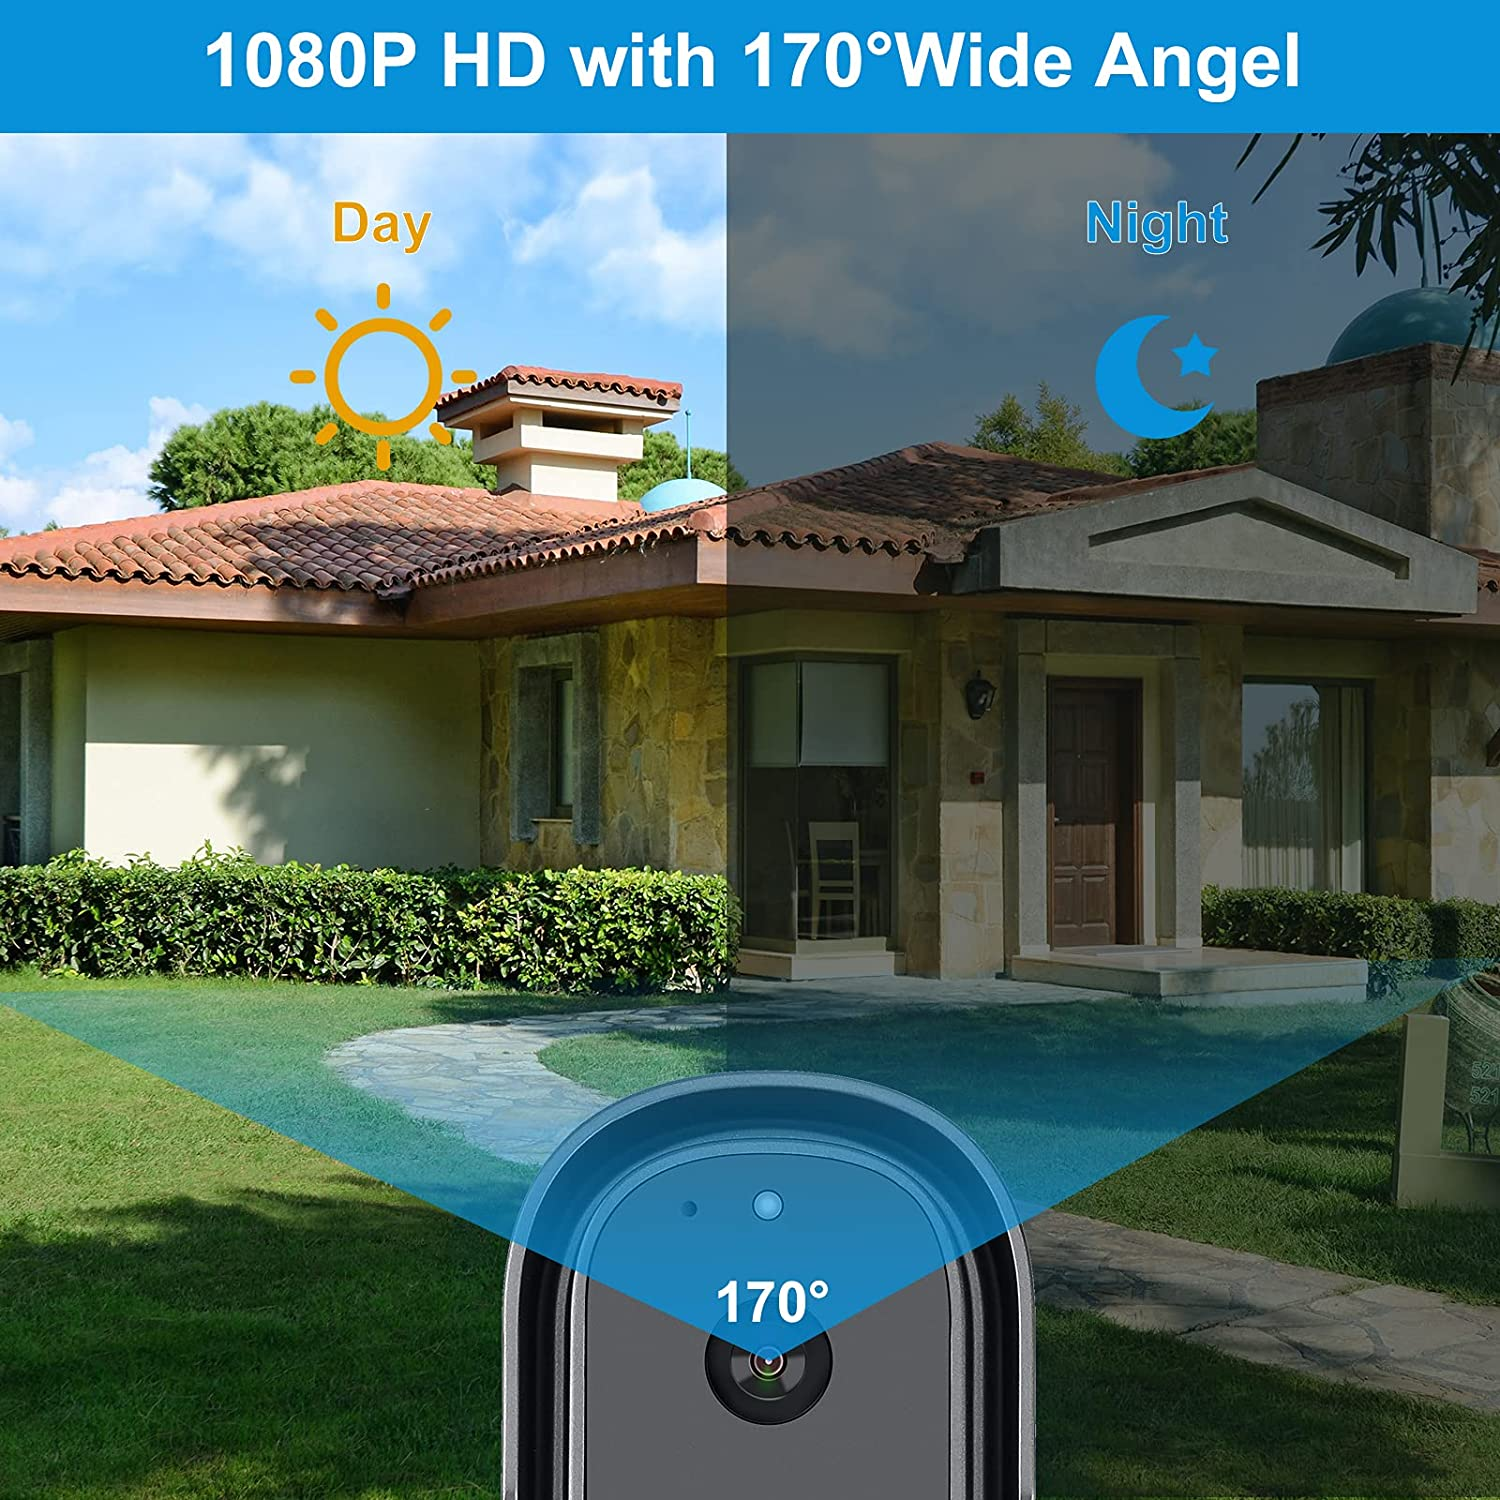 1080P WiFi Video Doorbell Camera,Work with Alexa, Google Home,Waterproof Camera with Motion Detection/Auto Light-up Chime enlarge